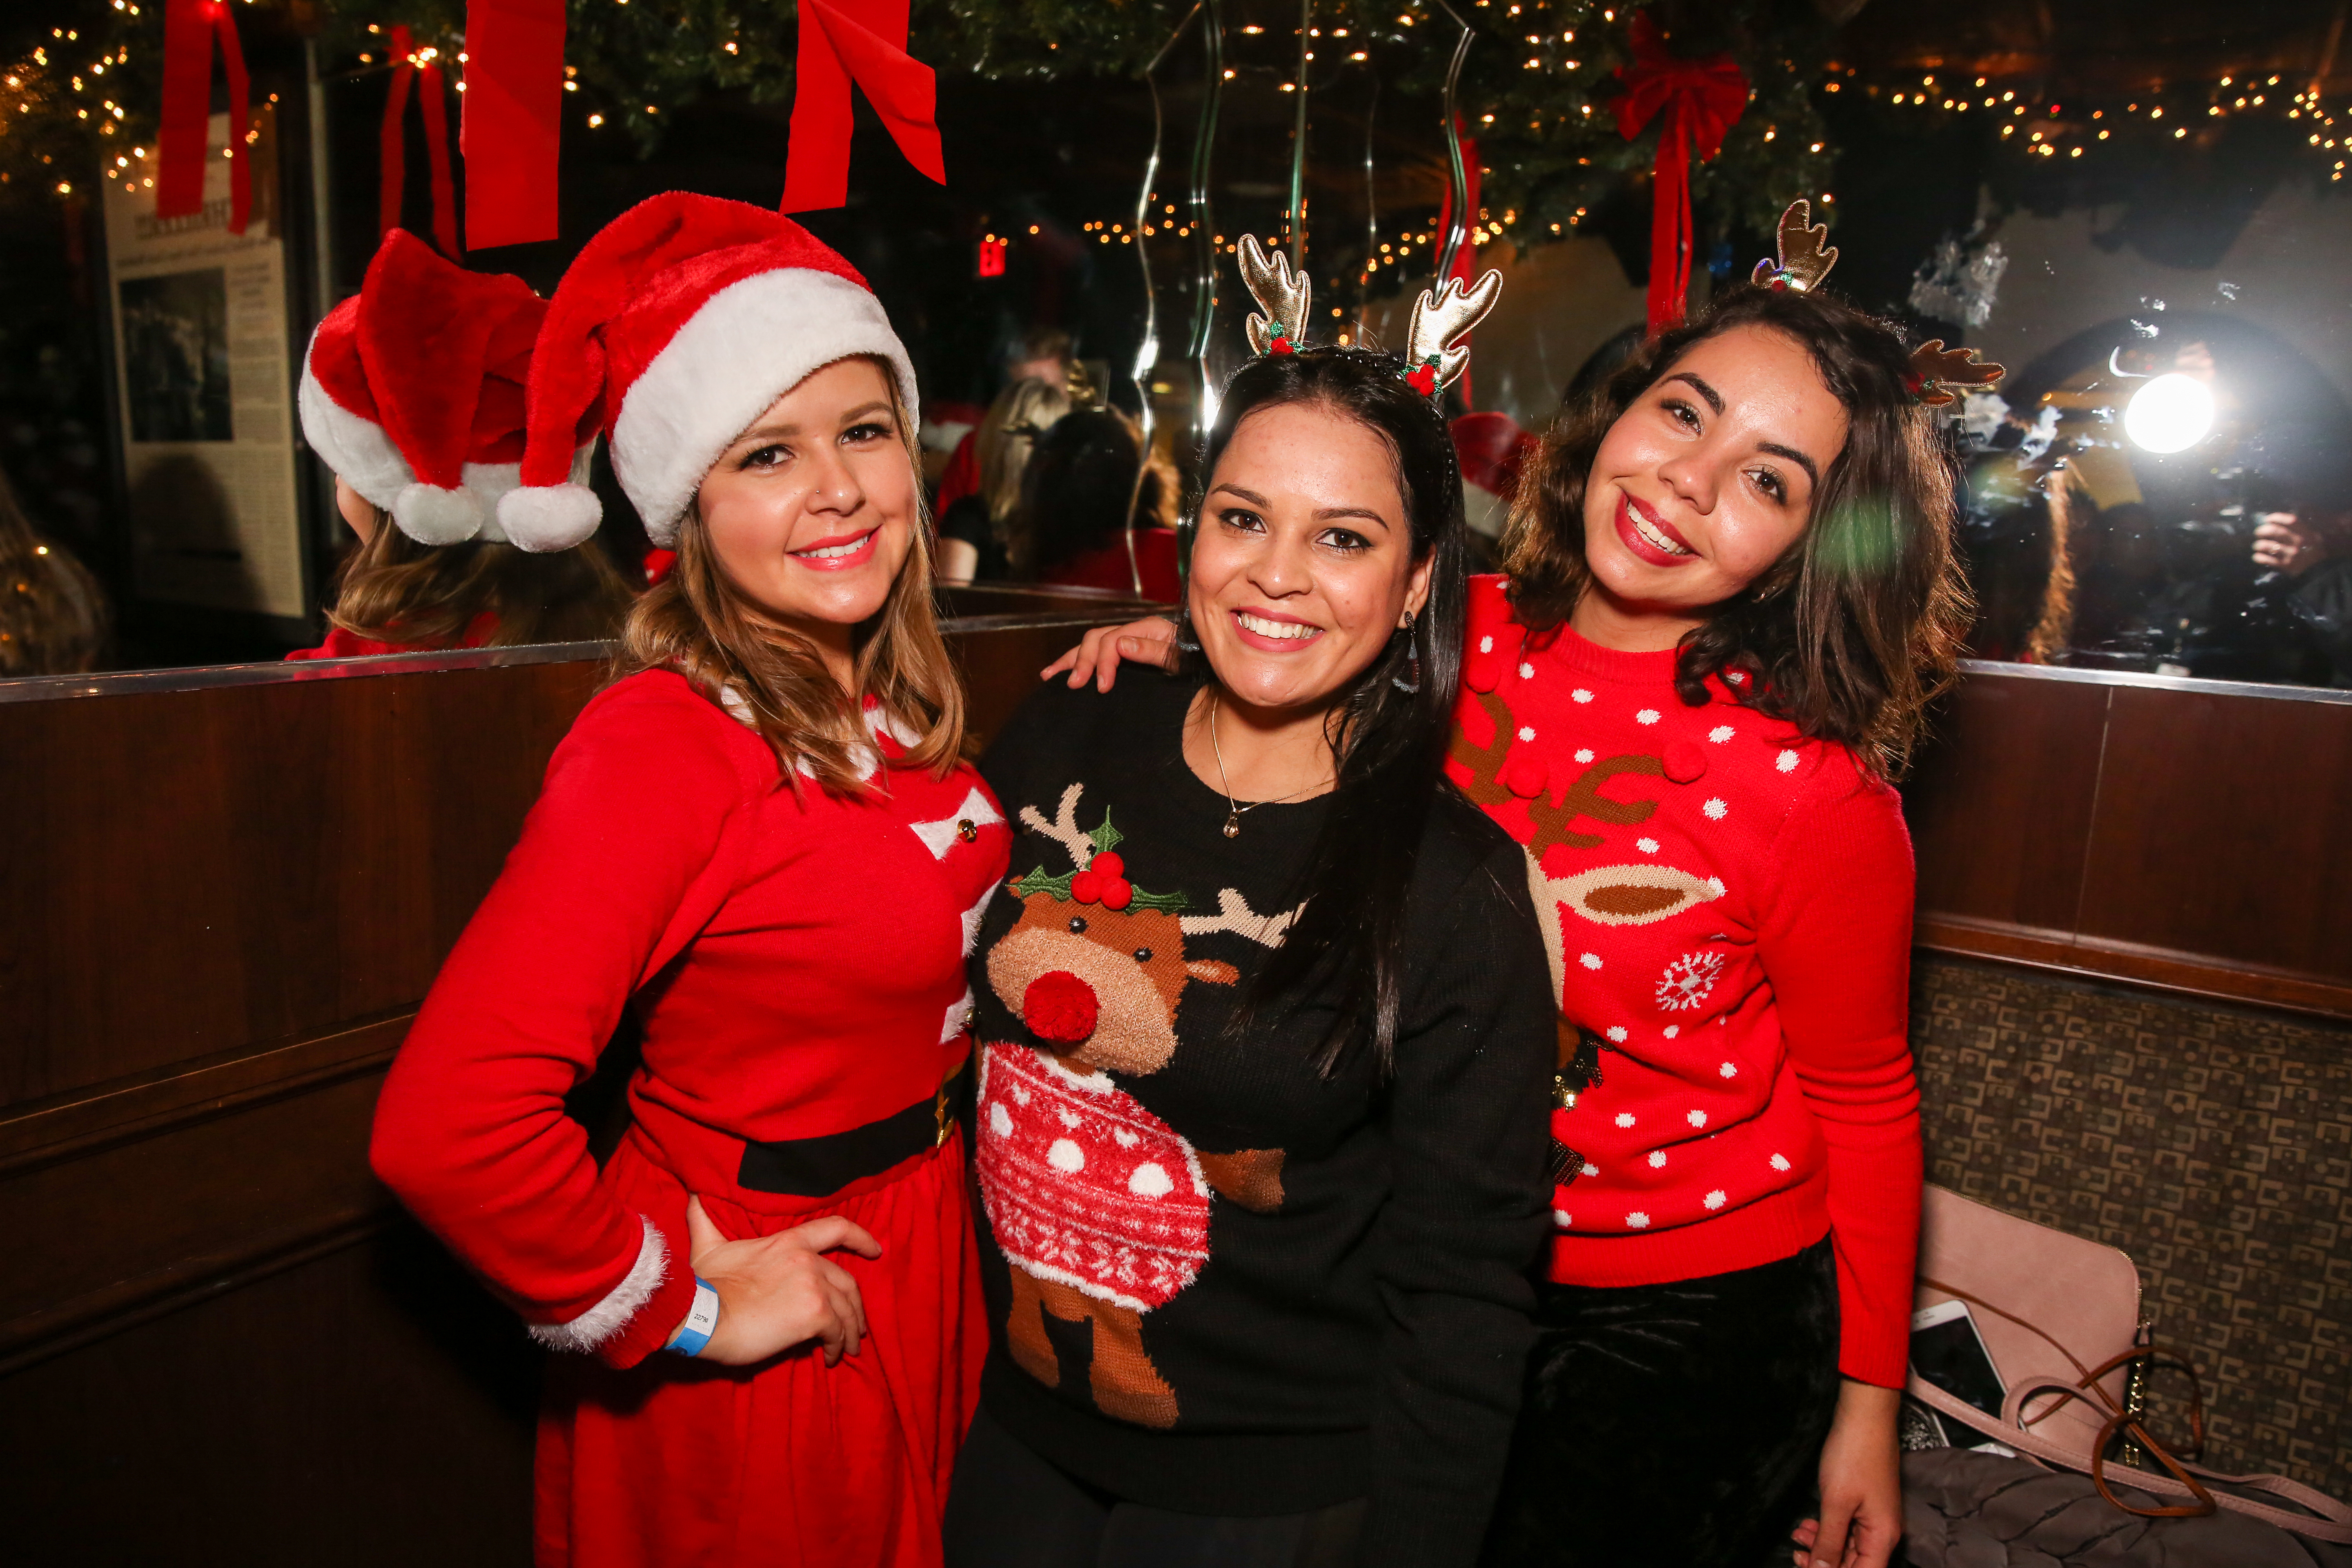 Hundreds of revelers clad in Christmas gear flooded bars in Dupont for Santa Con on December 9. The annual event gives people the chance to bar hop in costume while sipping on more than a little eggnog. (Amanda Andrade-Rhoades/DC Refined)